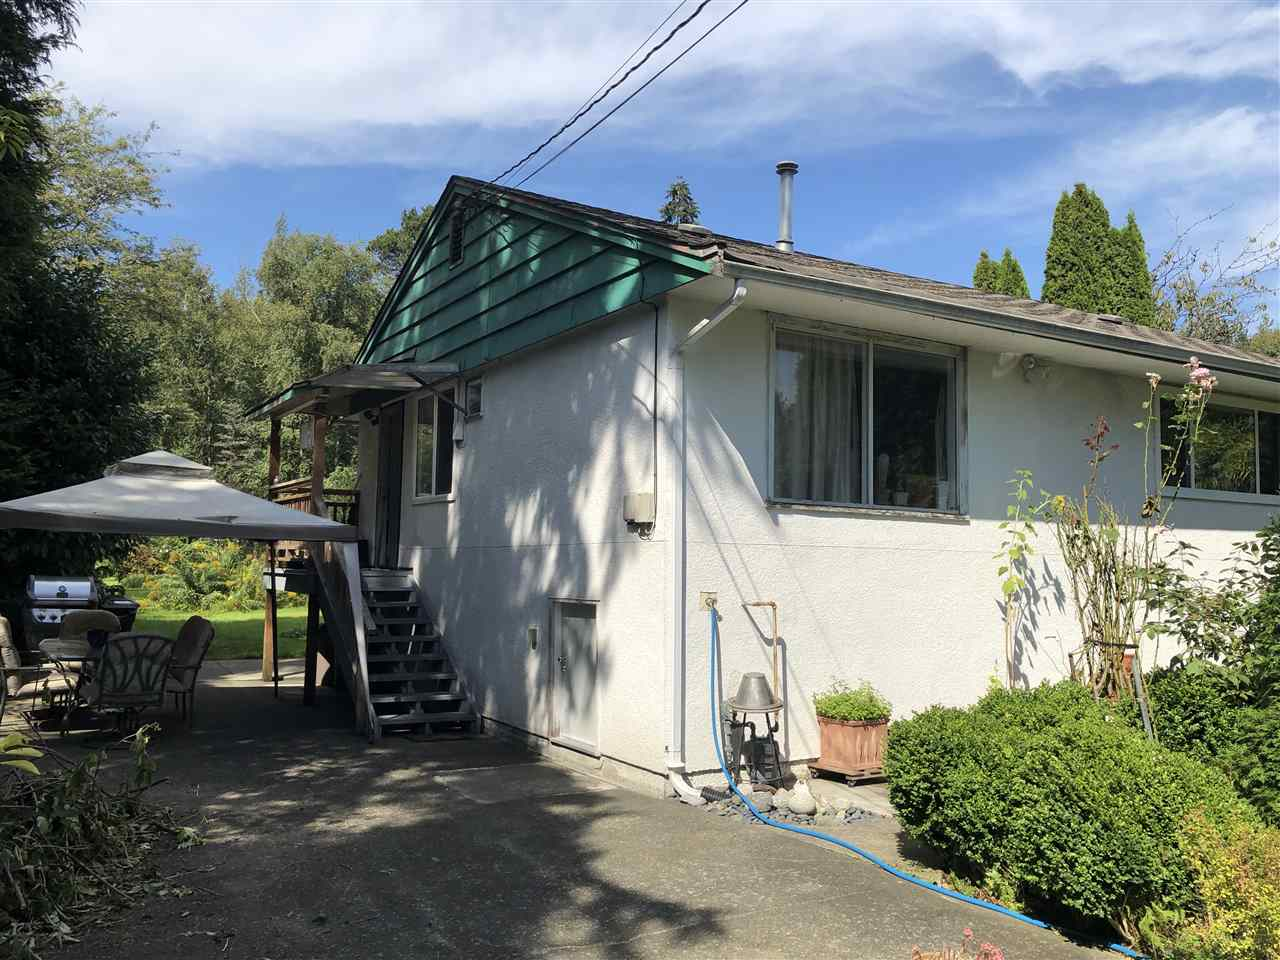 Great opportunity to build your dream home on a large 60 x 269 lot. Well maintained existing home. Home has 2 bedrooms and open living / dining / kitchen area. 1 full bathroom & laundry room. Natural gas forced air heat with hot water on demand. 3' concrete crawl space under the house great for storage. Close to skytrain and Marine Drive for commuting. Call your realtor today